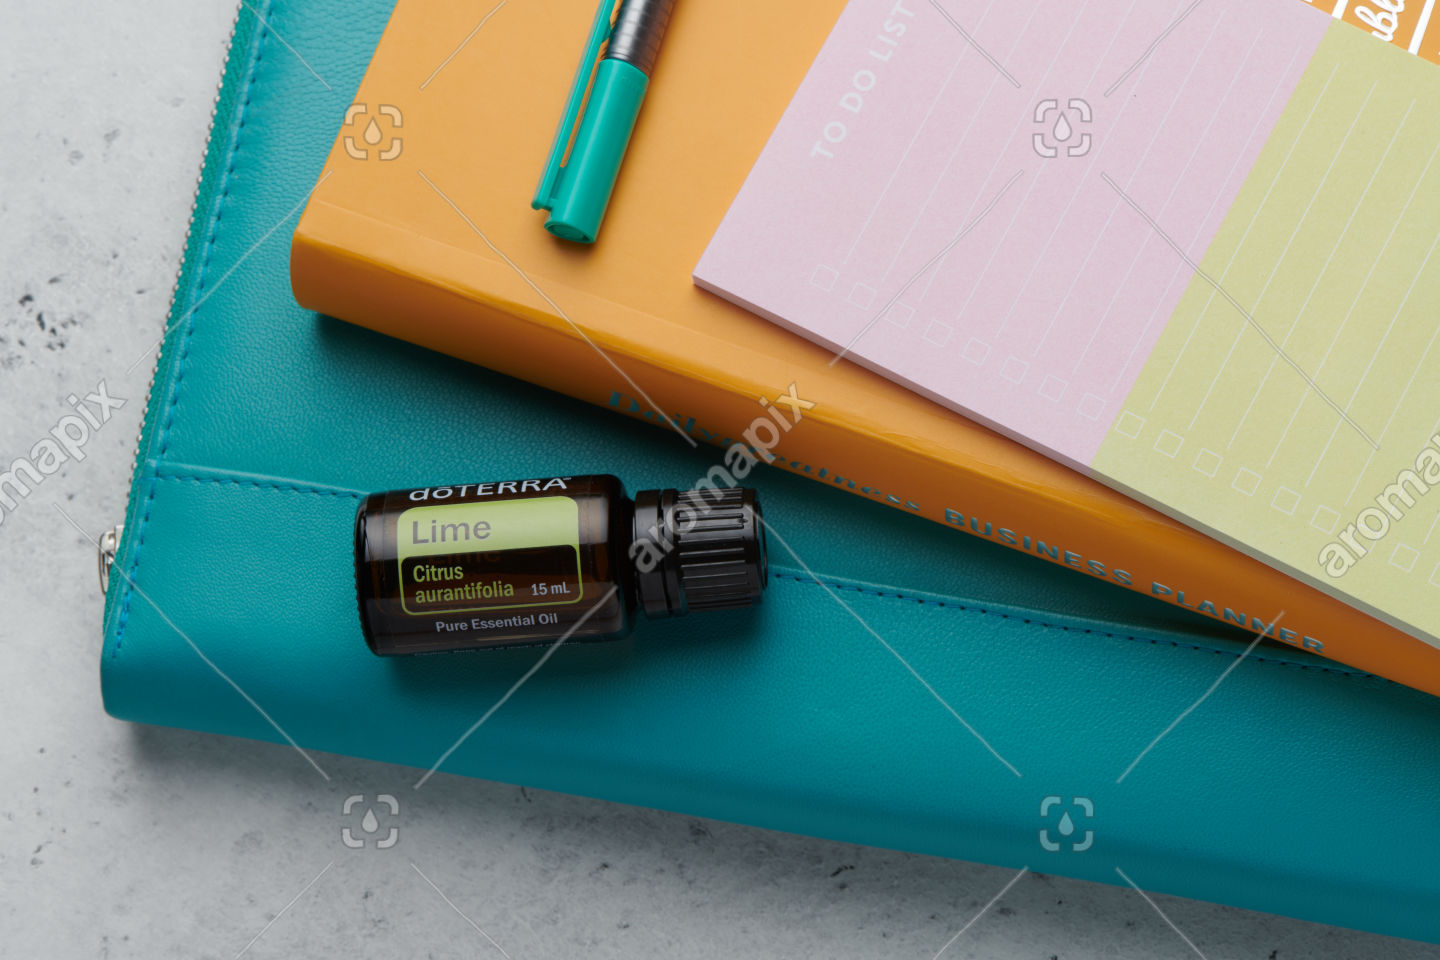 doTERRA Lime product with business tools